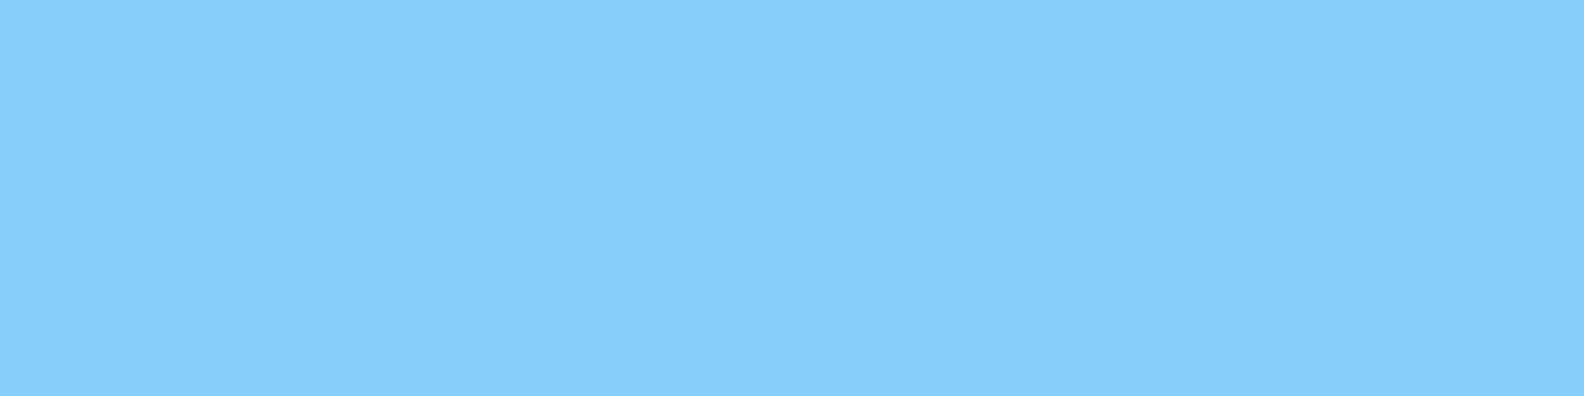 1584x396 Light Sky Blue Solid Color Background